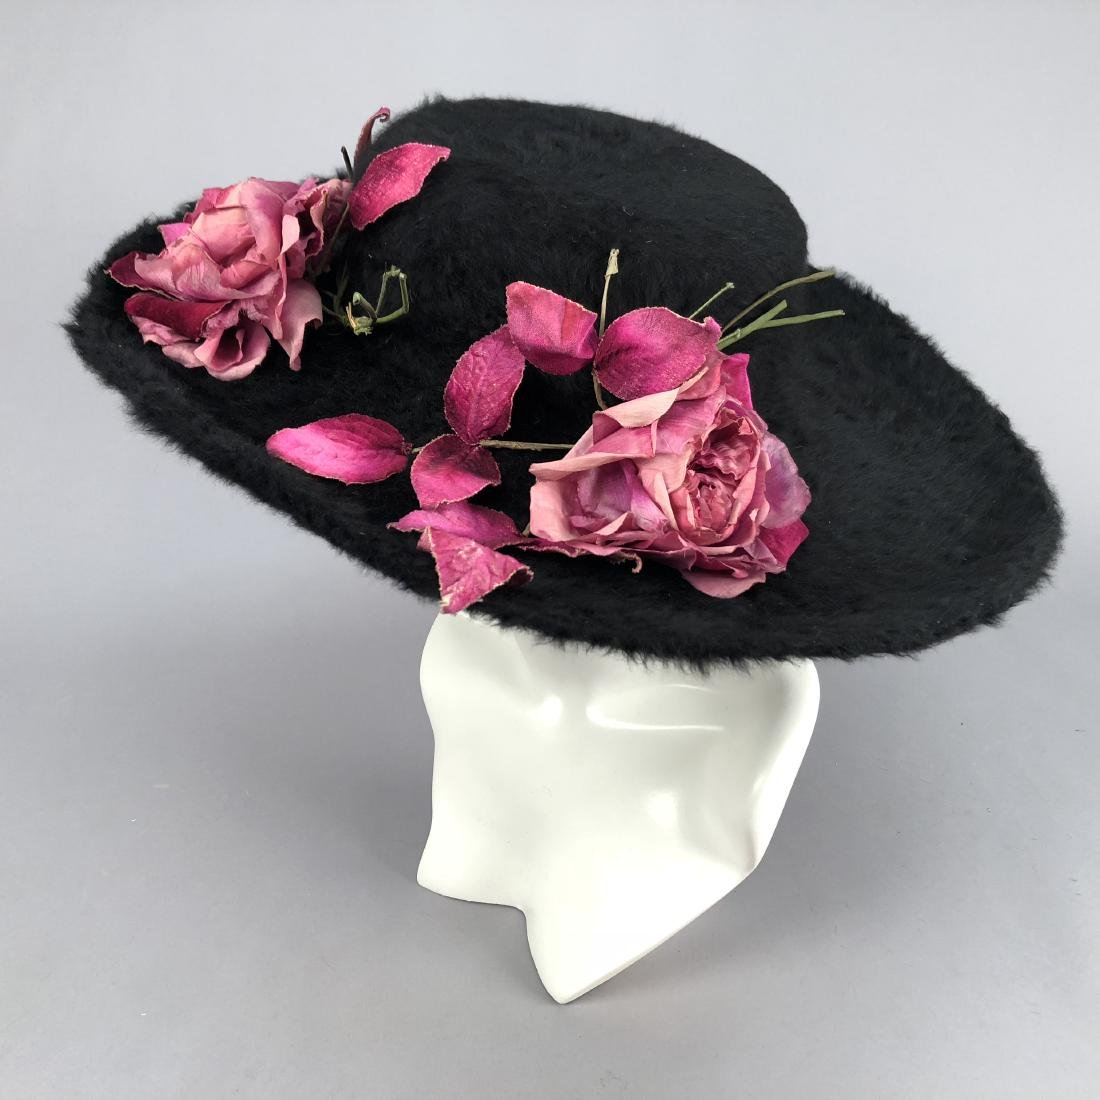 OVERSIZED WIDE-BRIM BEAVER HAT with ROSES, 1910